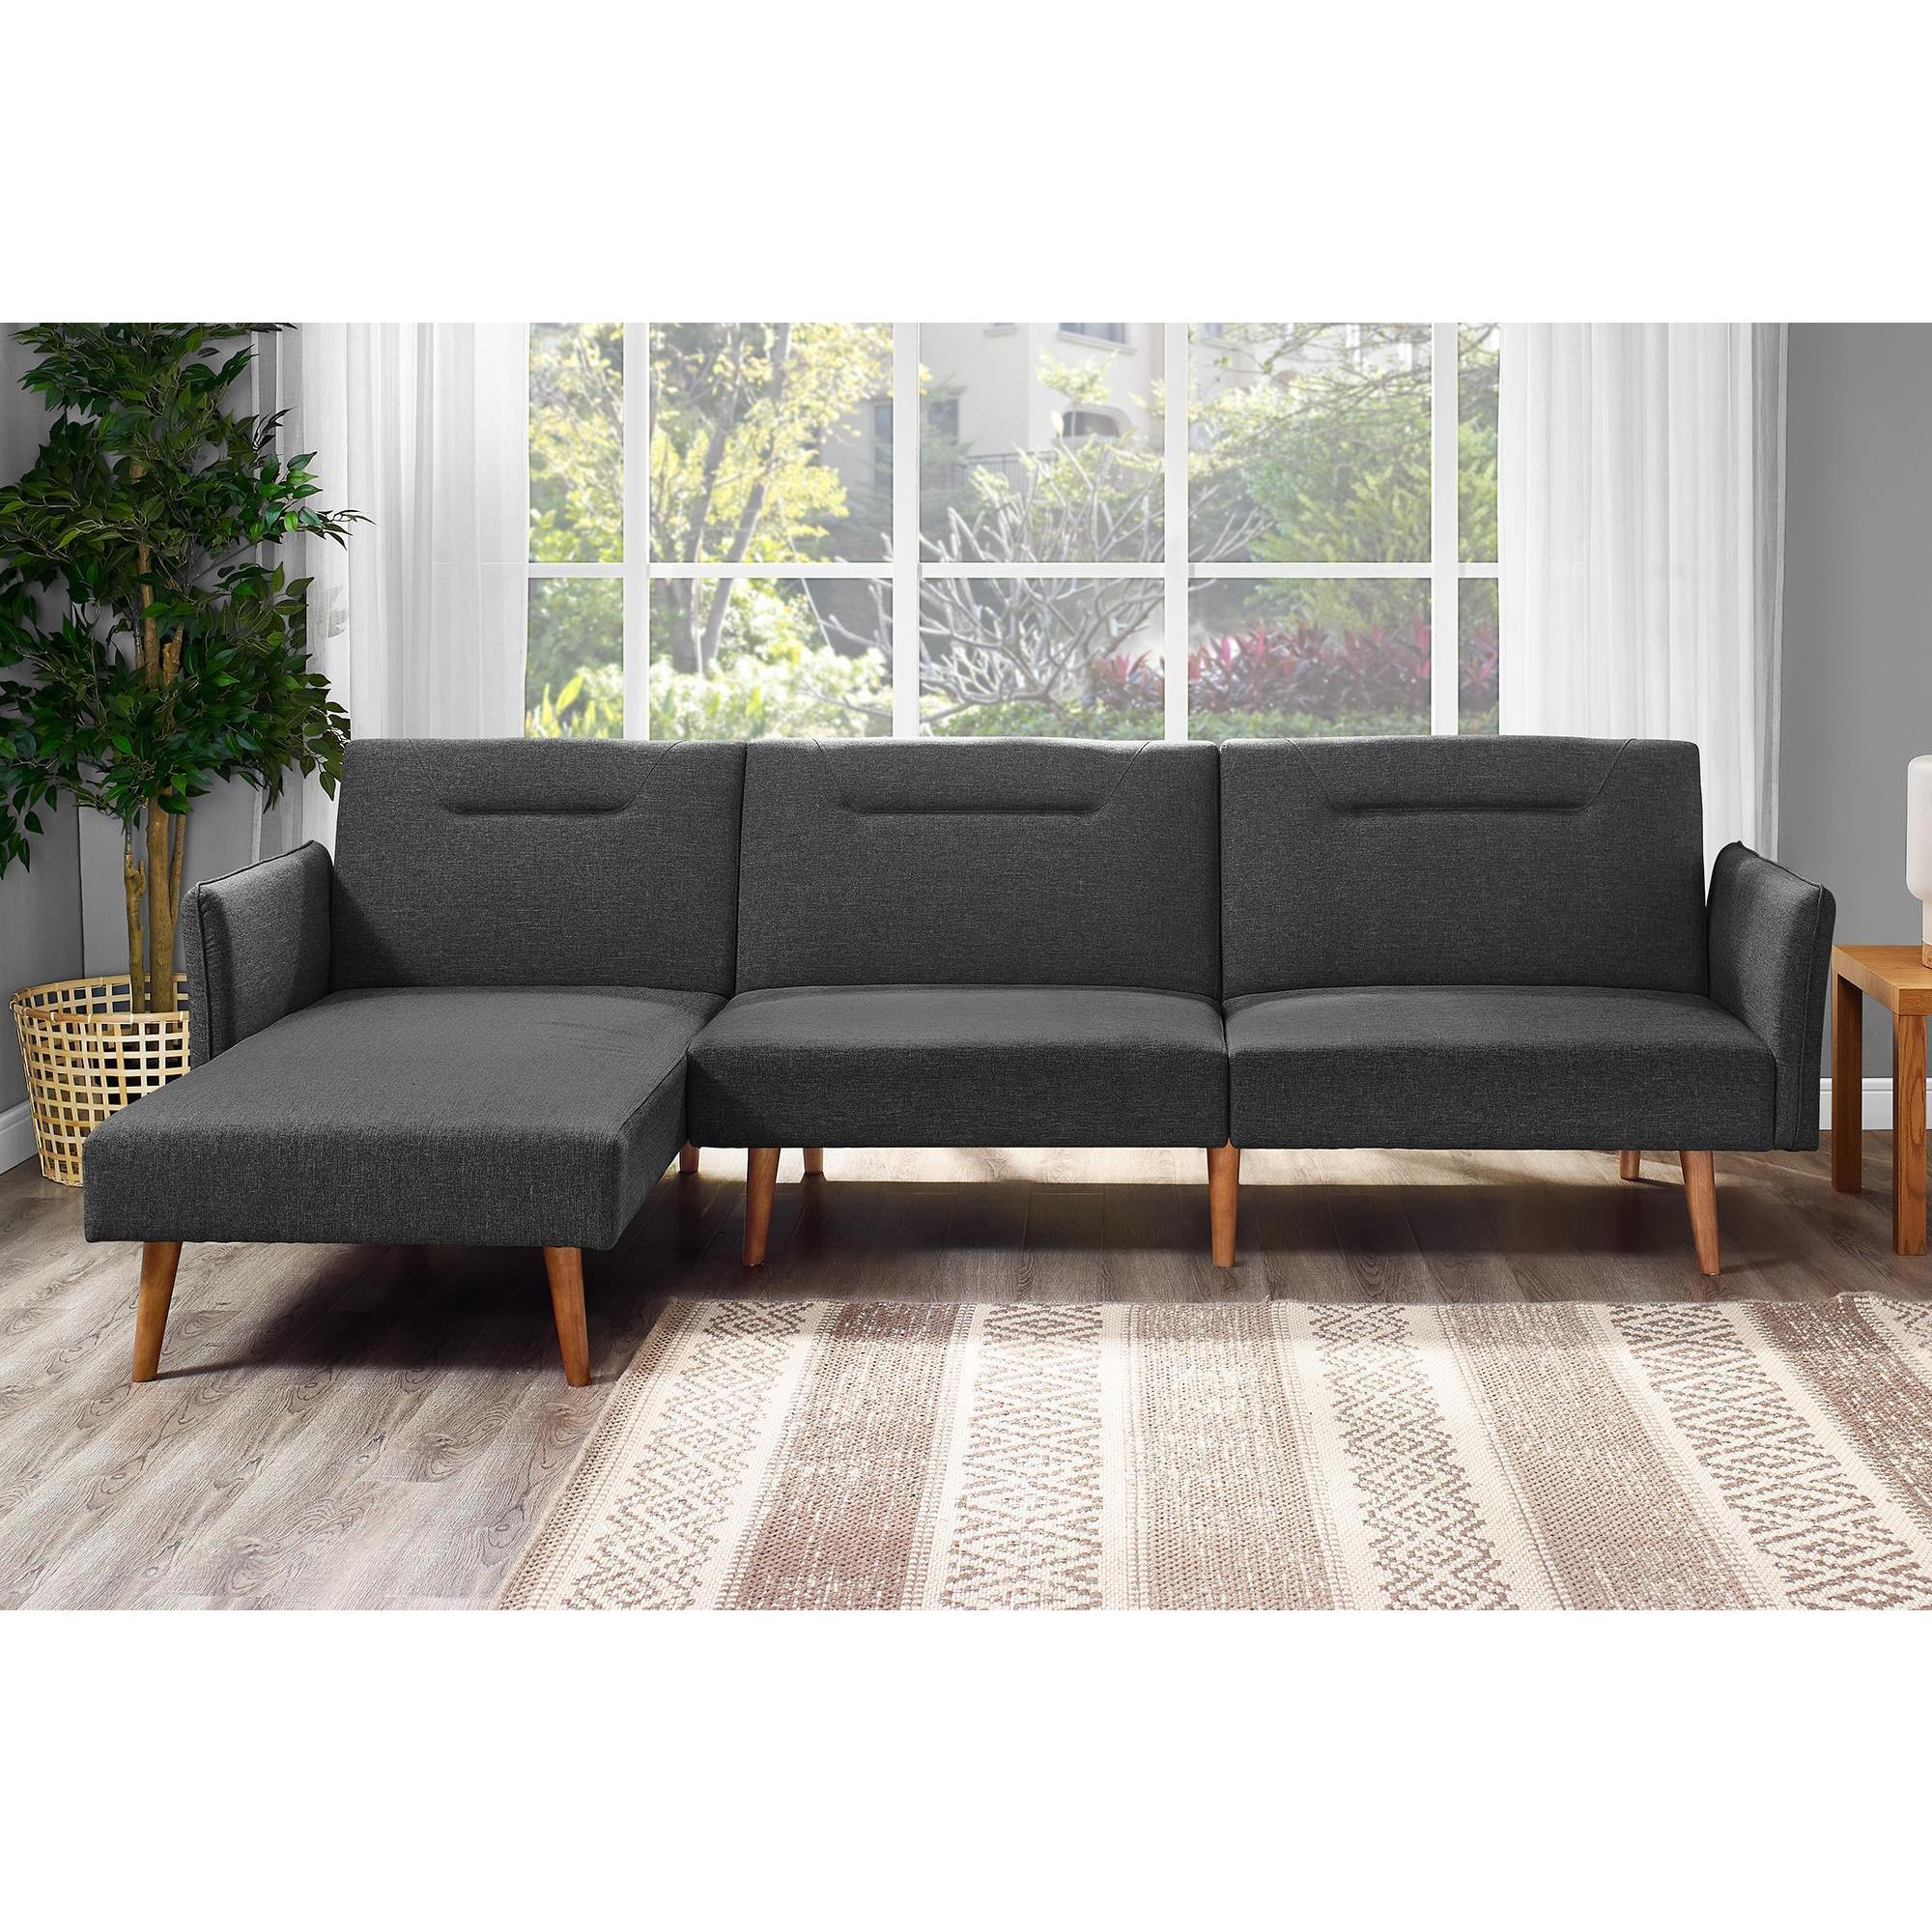 Dhp B Linen Futon Chaise Free Shipping Today Com 20099958